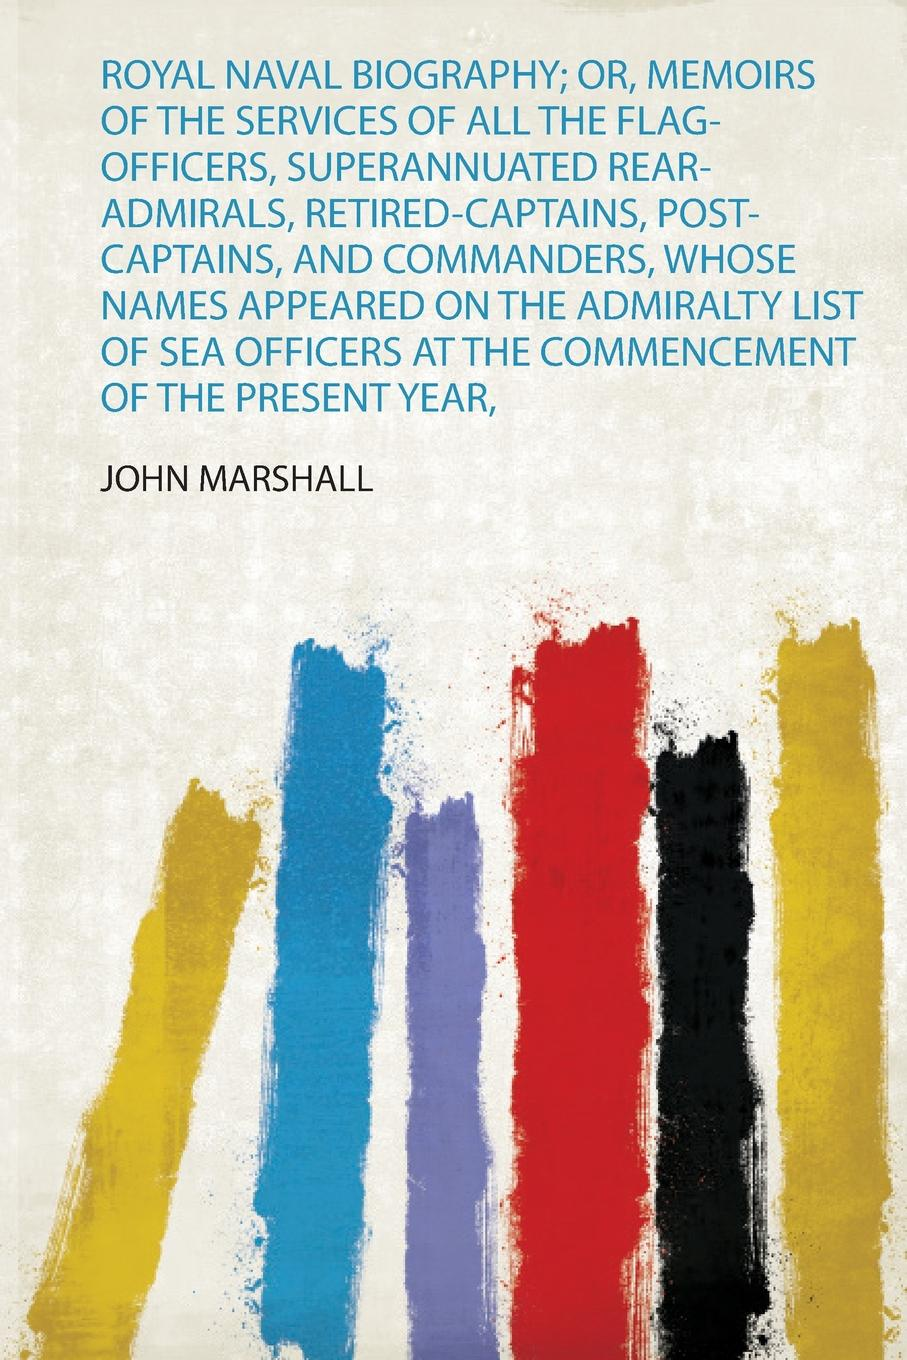 Royal Naval Biography; Or, Memoirs of the Services of All the Flag-Officers, Superannuated Rear-Admirals, Retired-Captains, Post-Captains, and Commanders, Whose Names Appeared on the Admiralty List of Sea Officers at the Commencement of the Presen... john joseph welch a text book of naval architecture for the use of officers of the royal navy